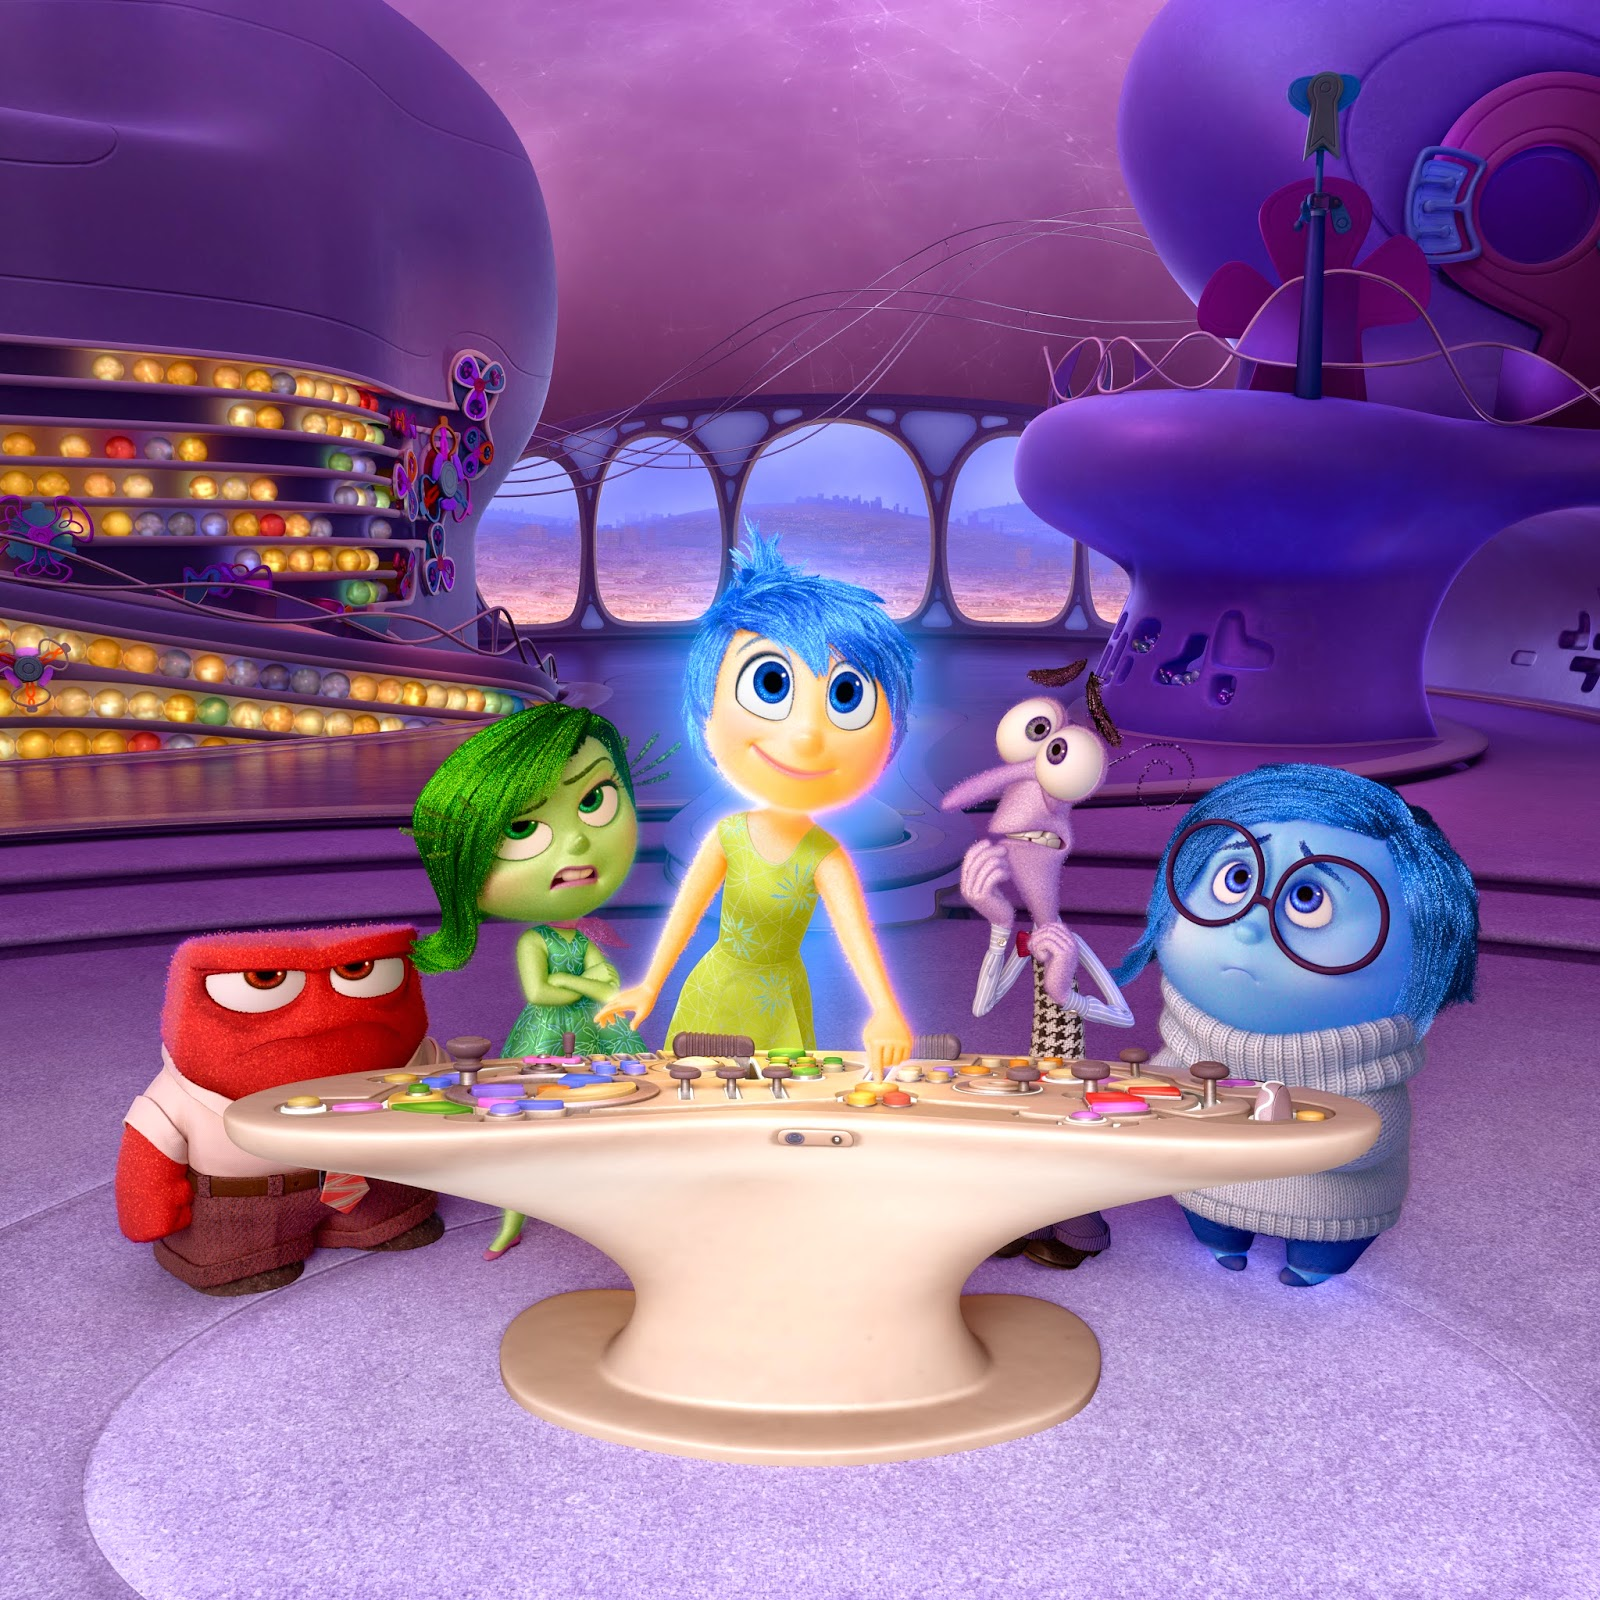 disney pixar inside out film joy disgust anger fear sadness 2015